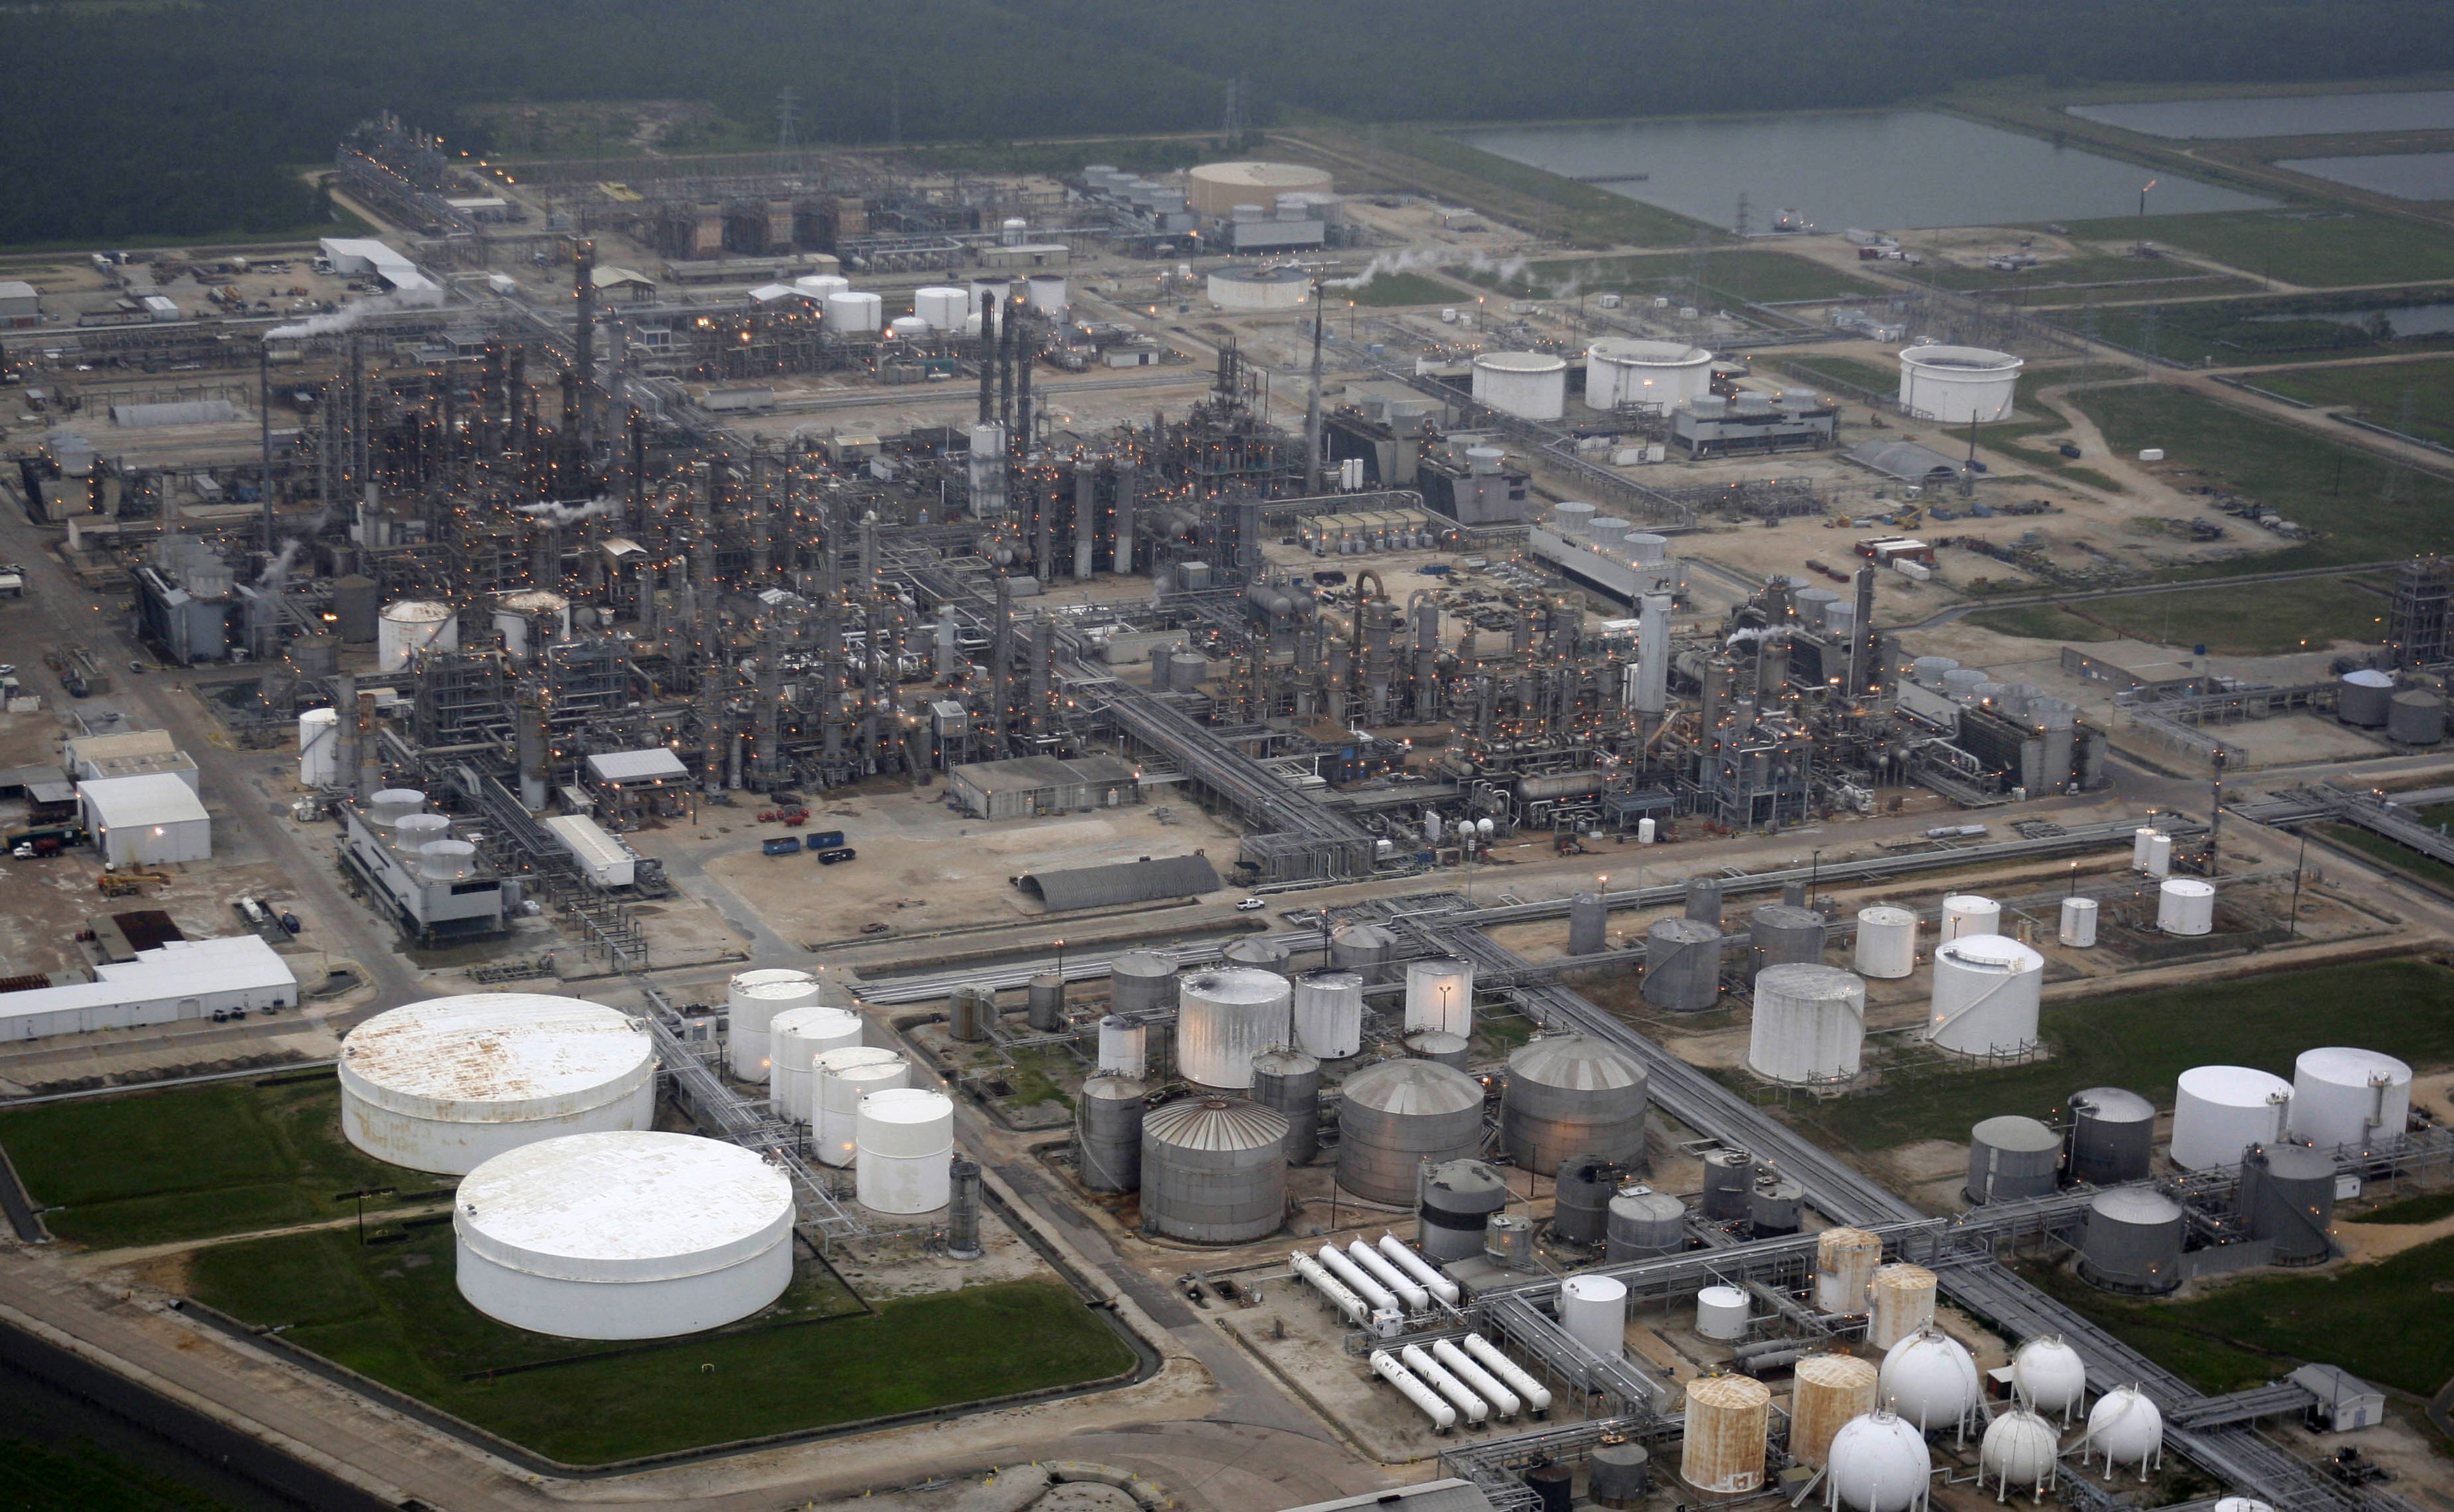 FILE PHOTO: A petrochemical facility is shown after Hurricane Ike hit in Deer Park, Texas September 13, 2008. REUTERS/David J. Phillip